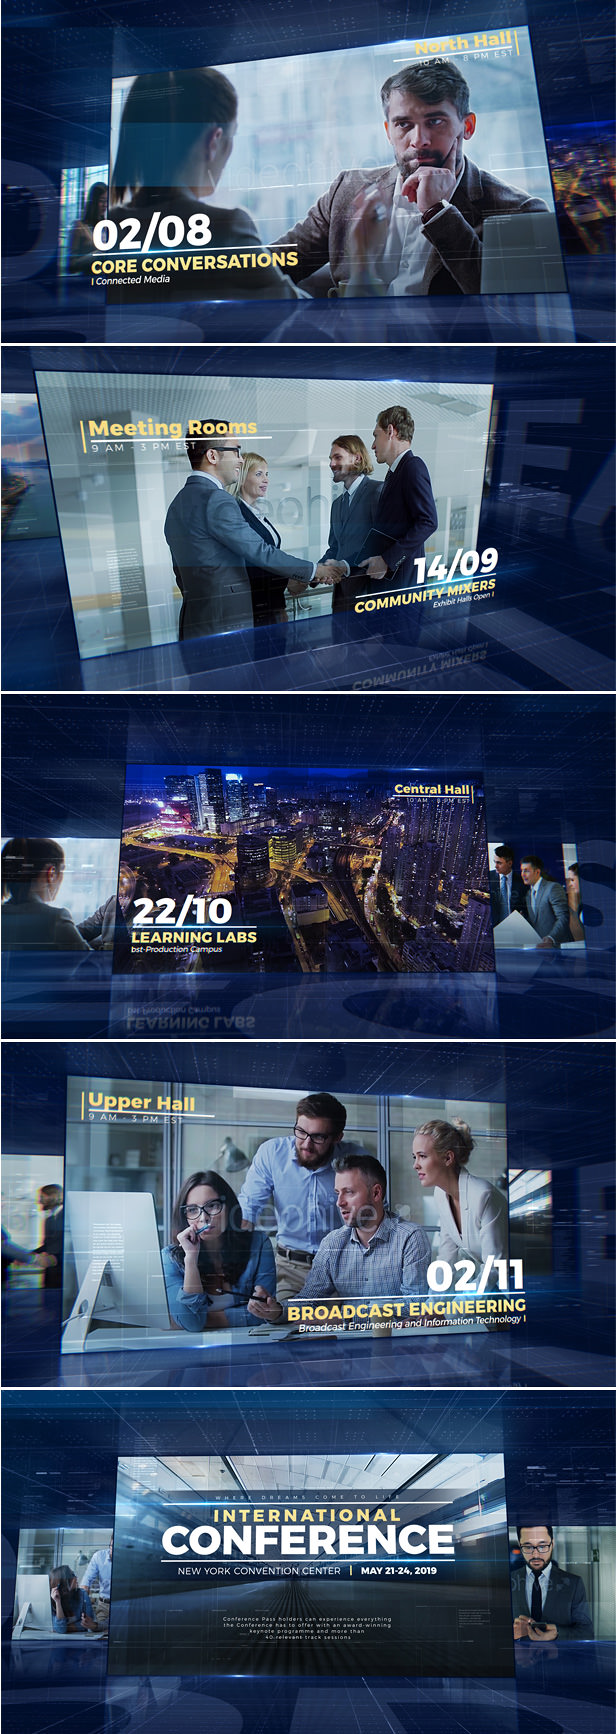 Event Promo After Effects Template for conference announcement, corporate video, technology presentation